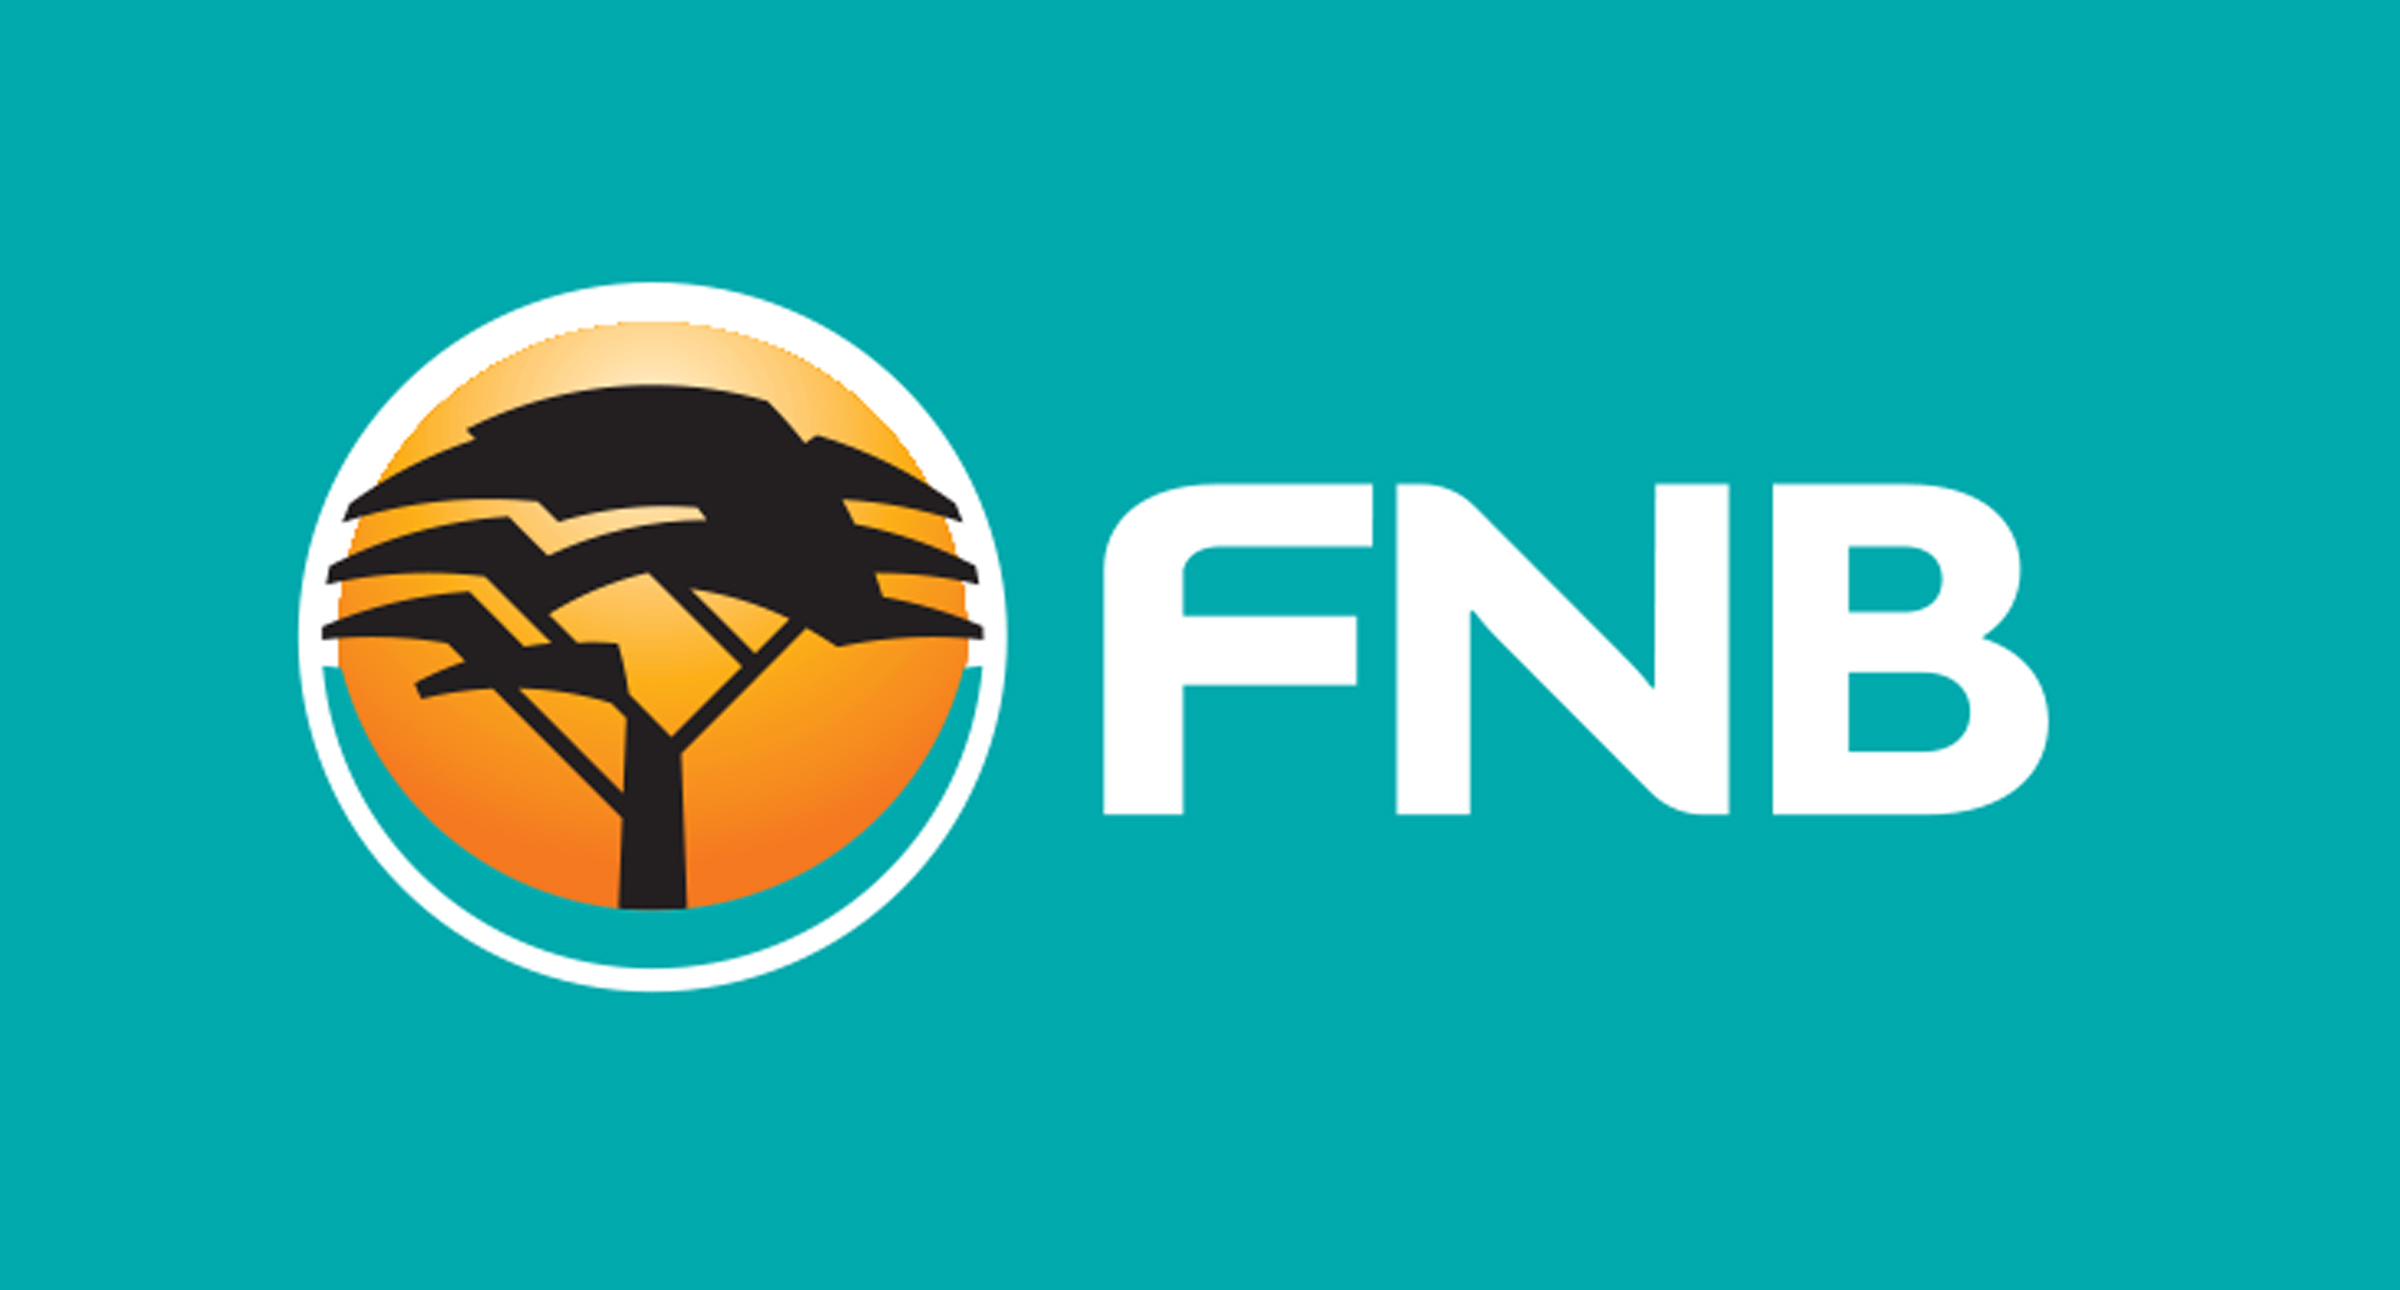 Fnb forex call centre